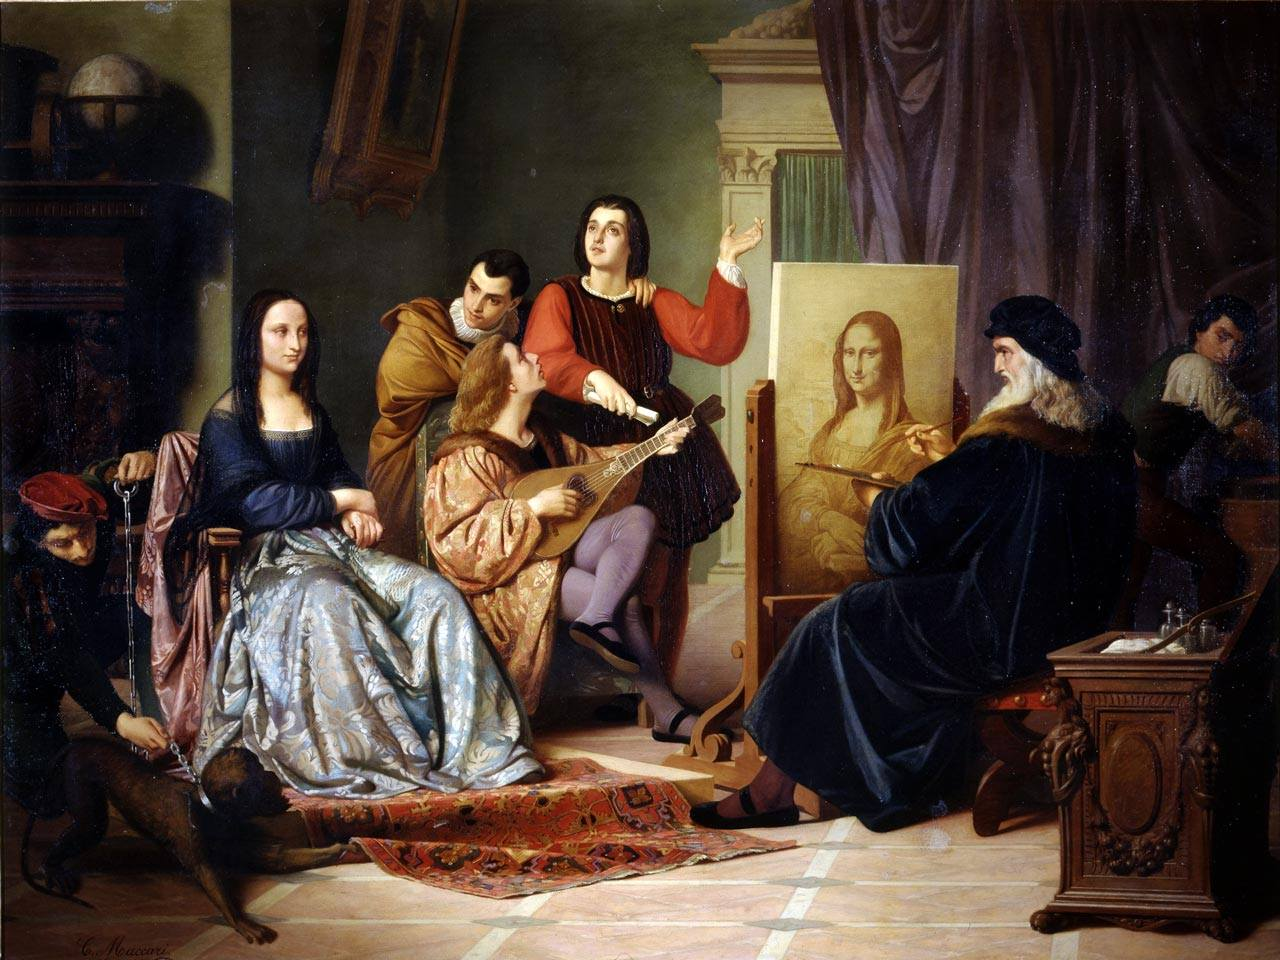 Leonardo Painting the Mona Lisa by Cesare Maccari – 1863